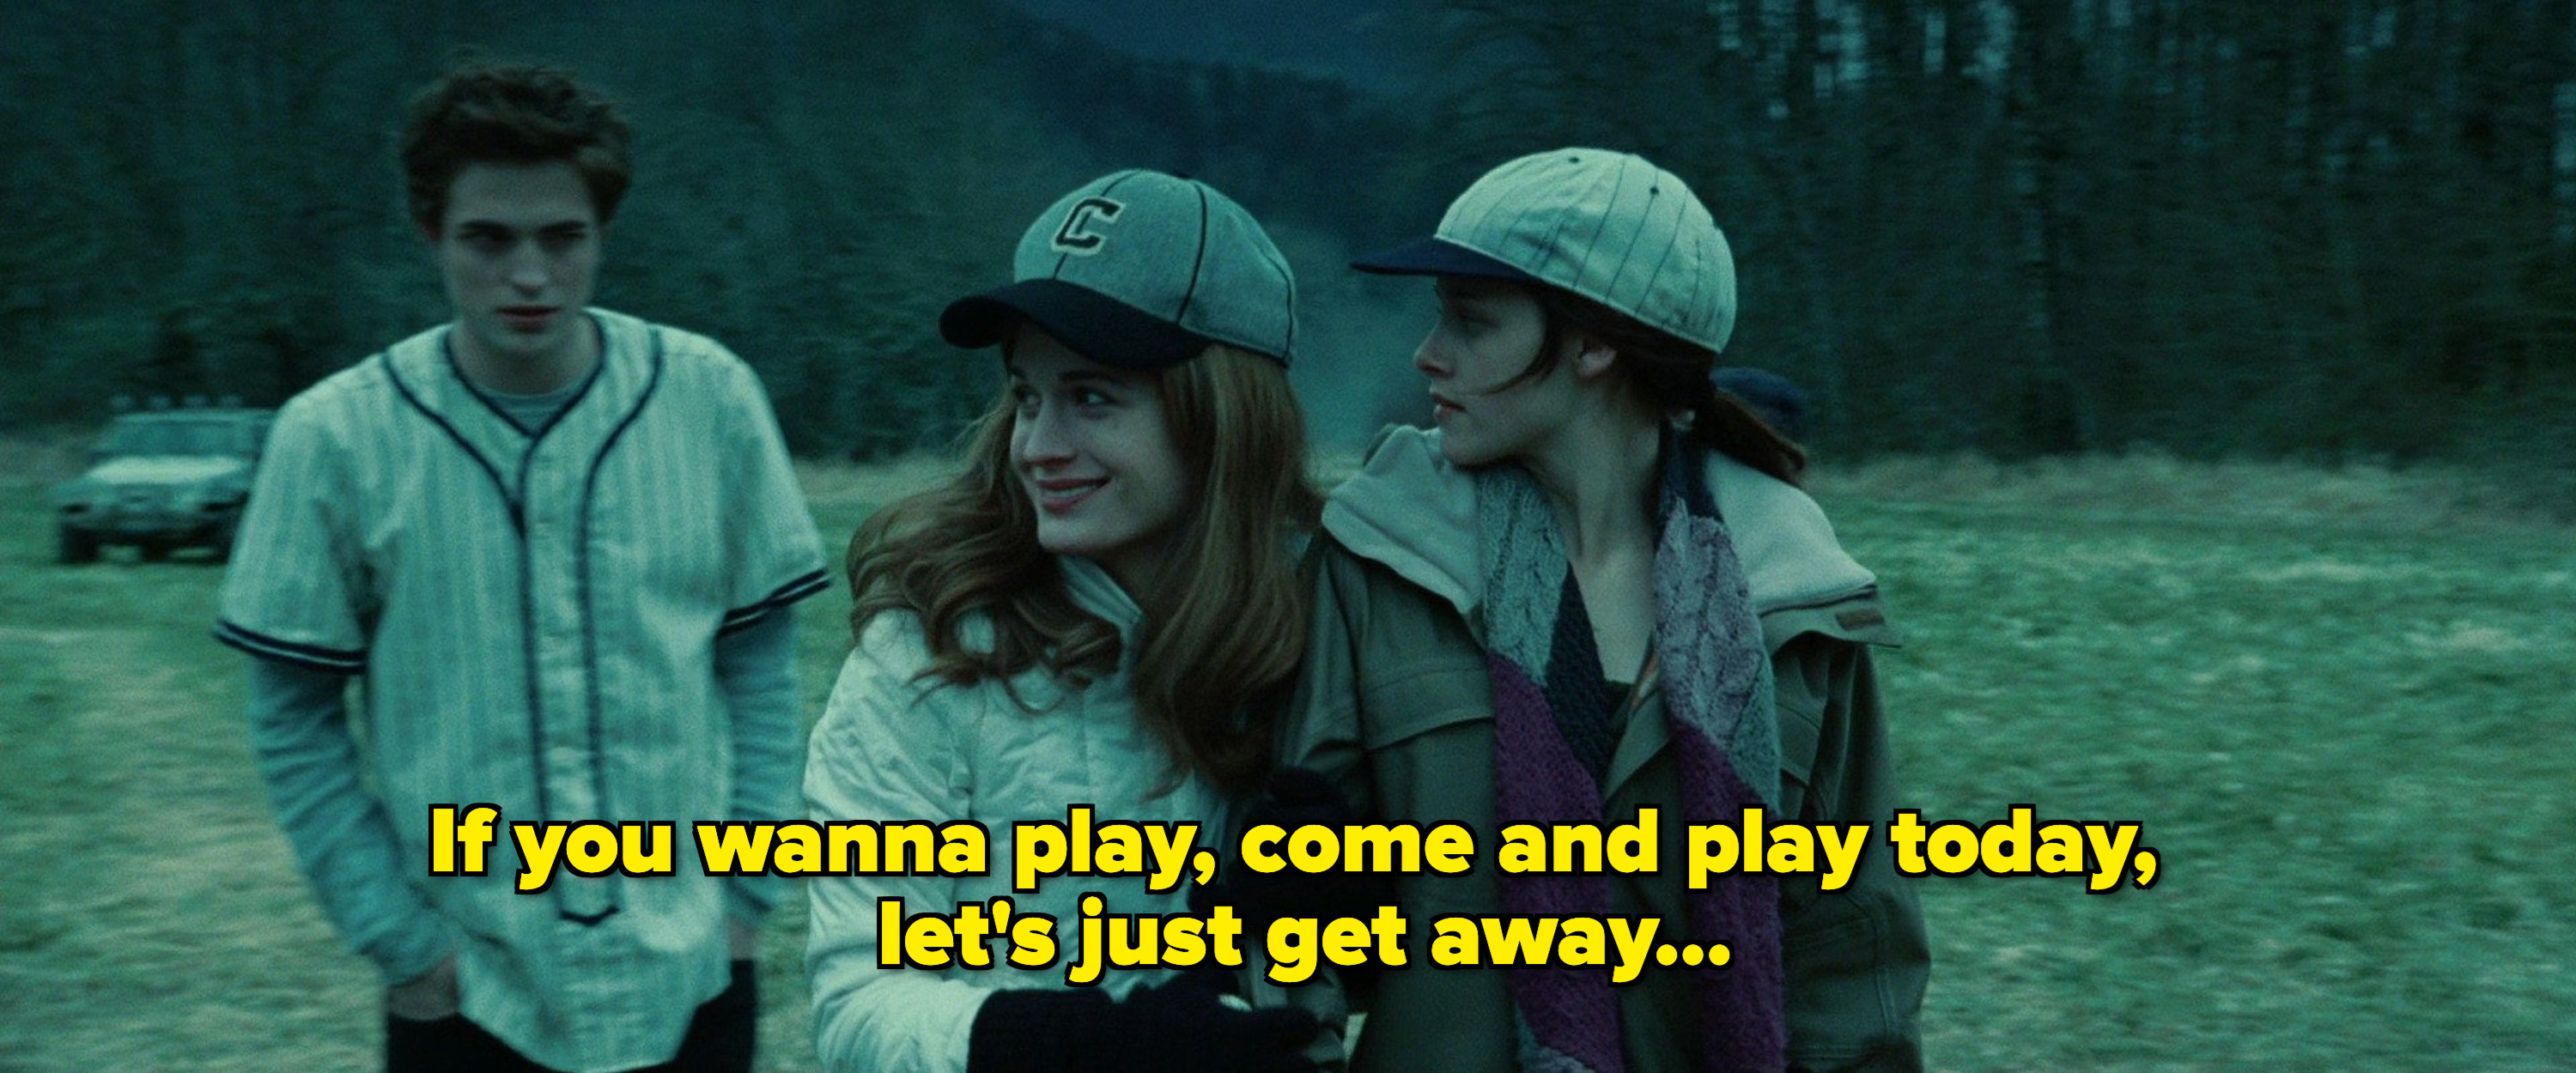 """A picture of the baseball scene from twilight with the caption: """"If you wanna play, come and play today, let's just get away"""